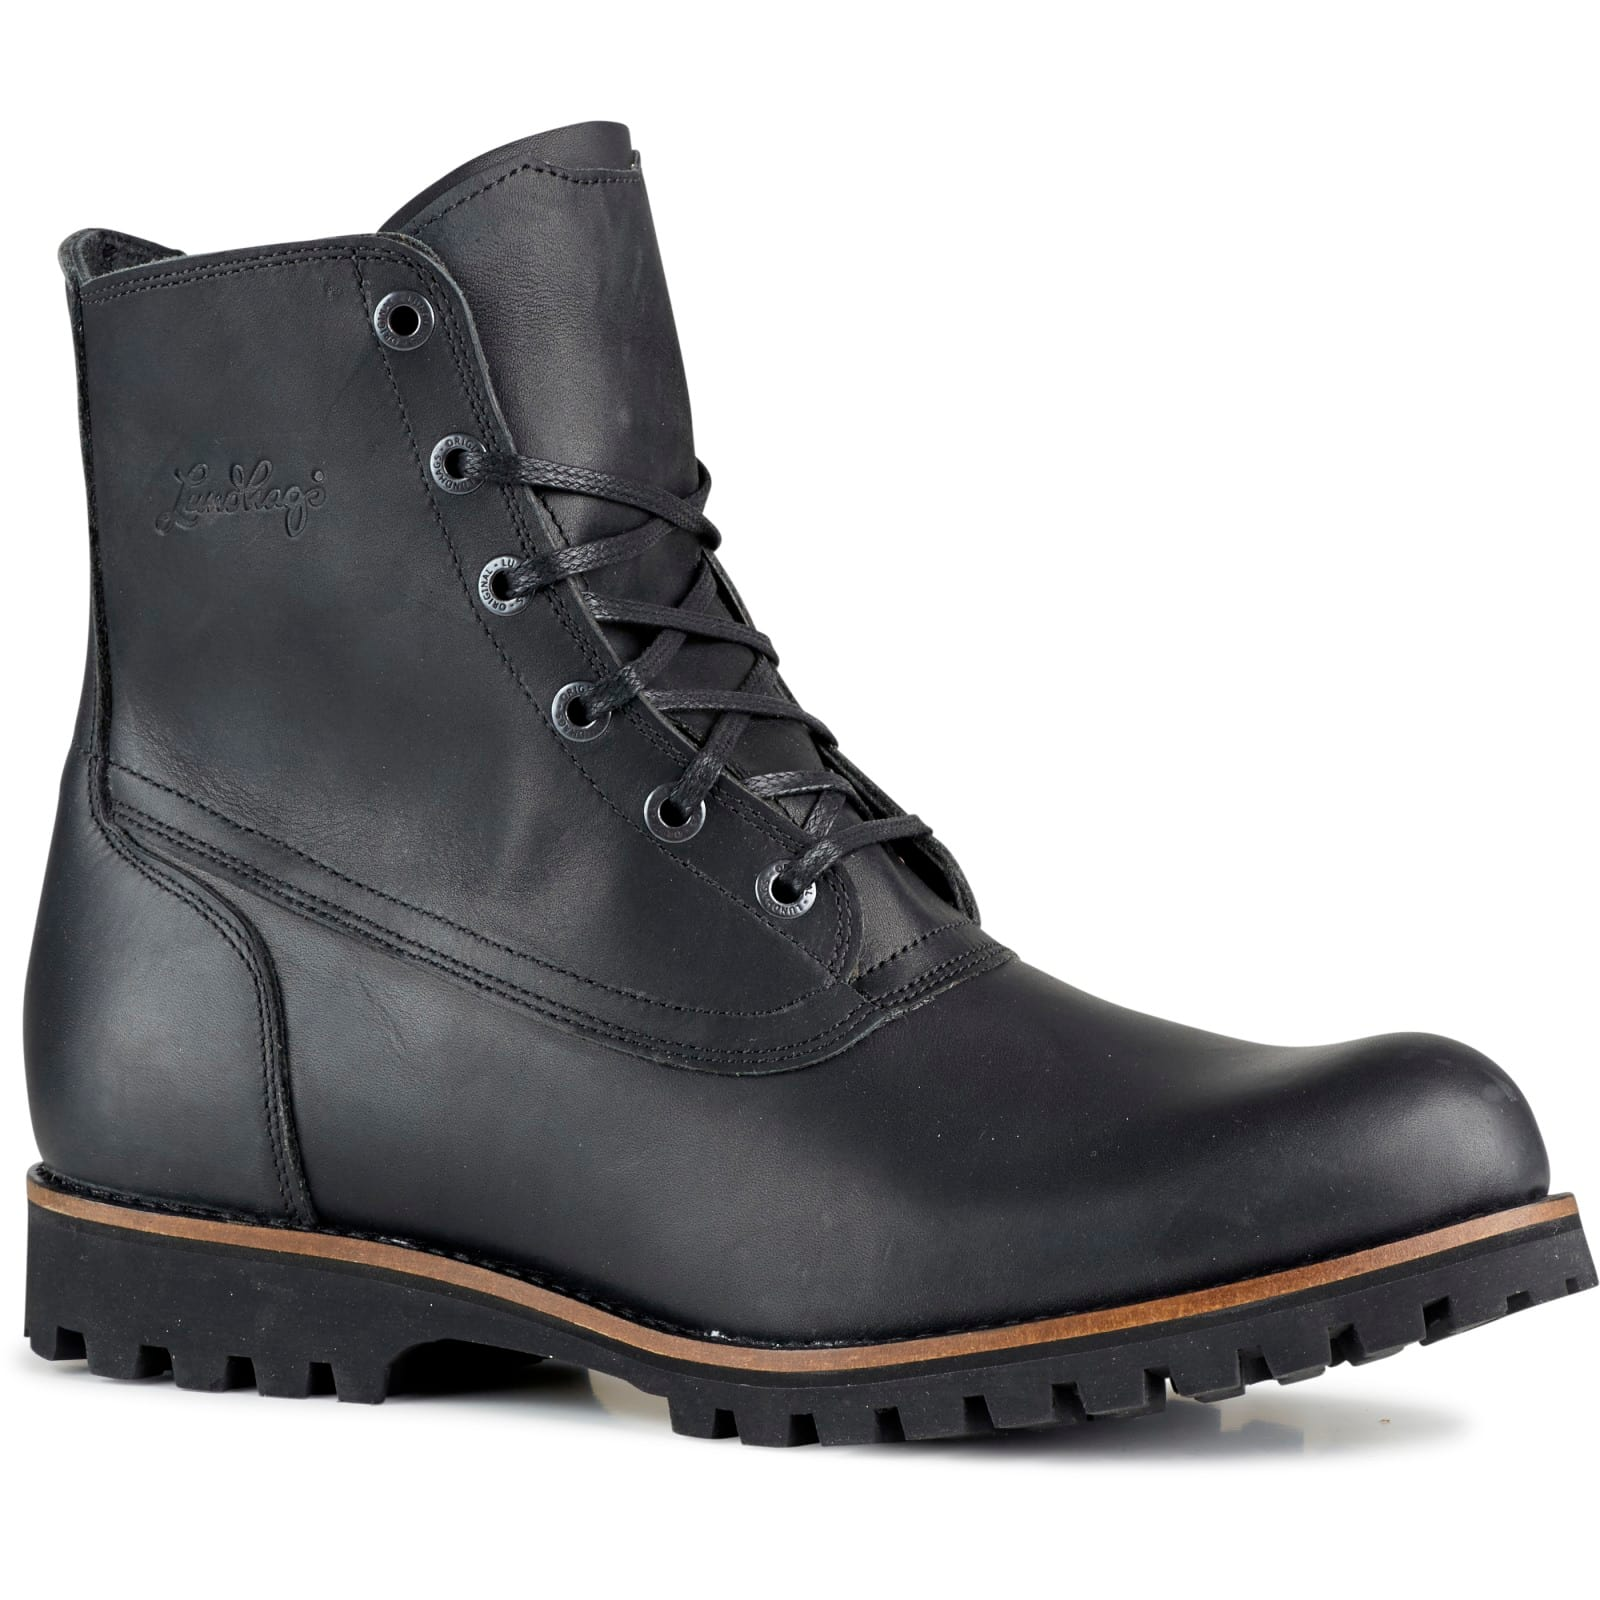 Buy Lundhags Tanner Boot from Outnorth c3026dd4f8